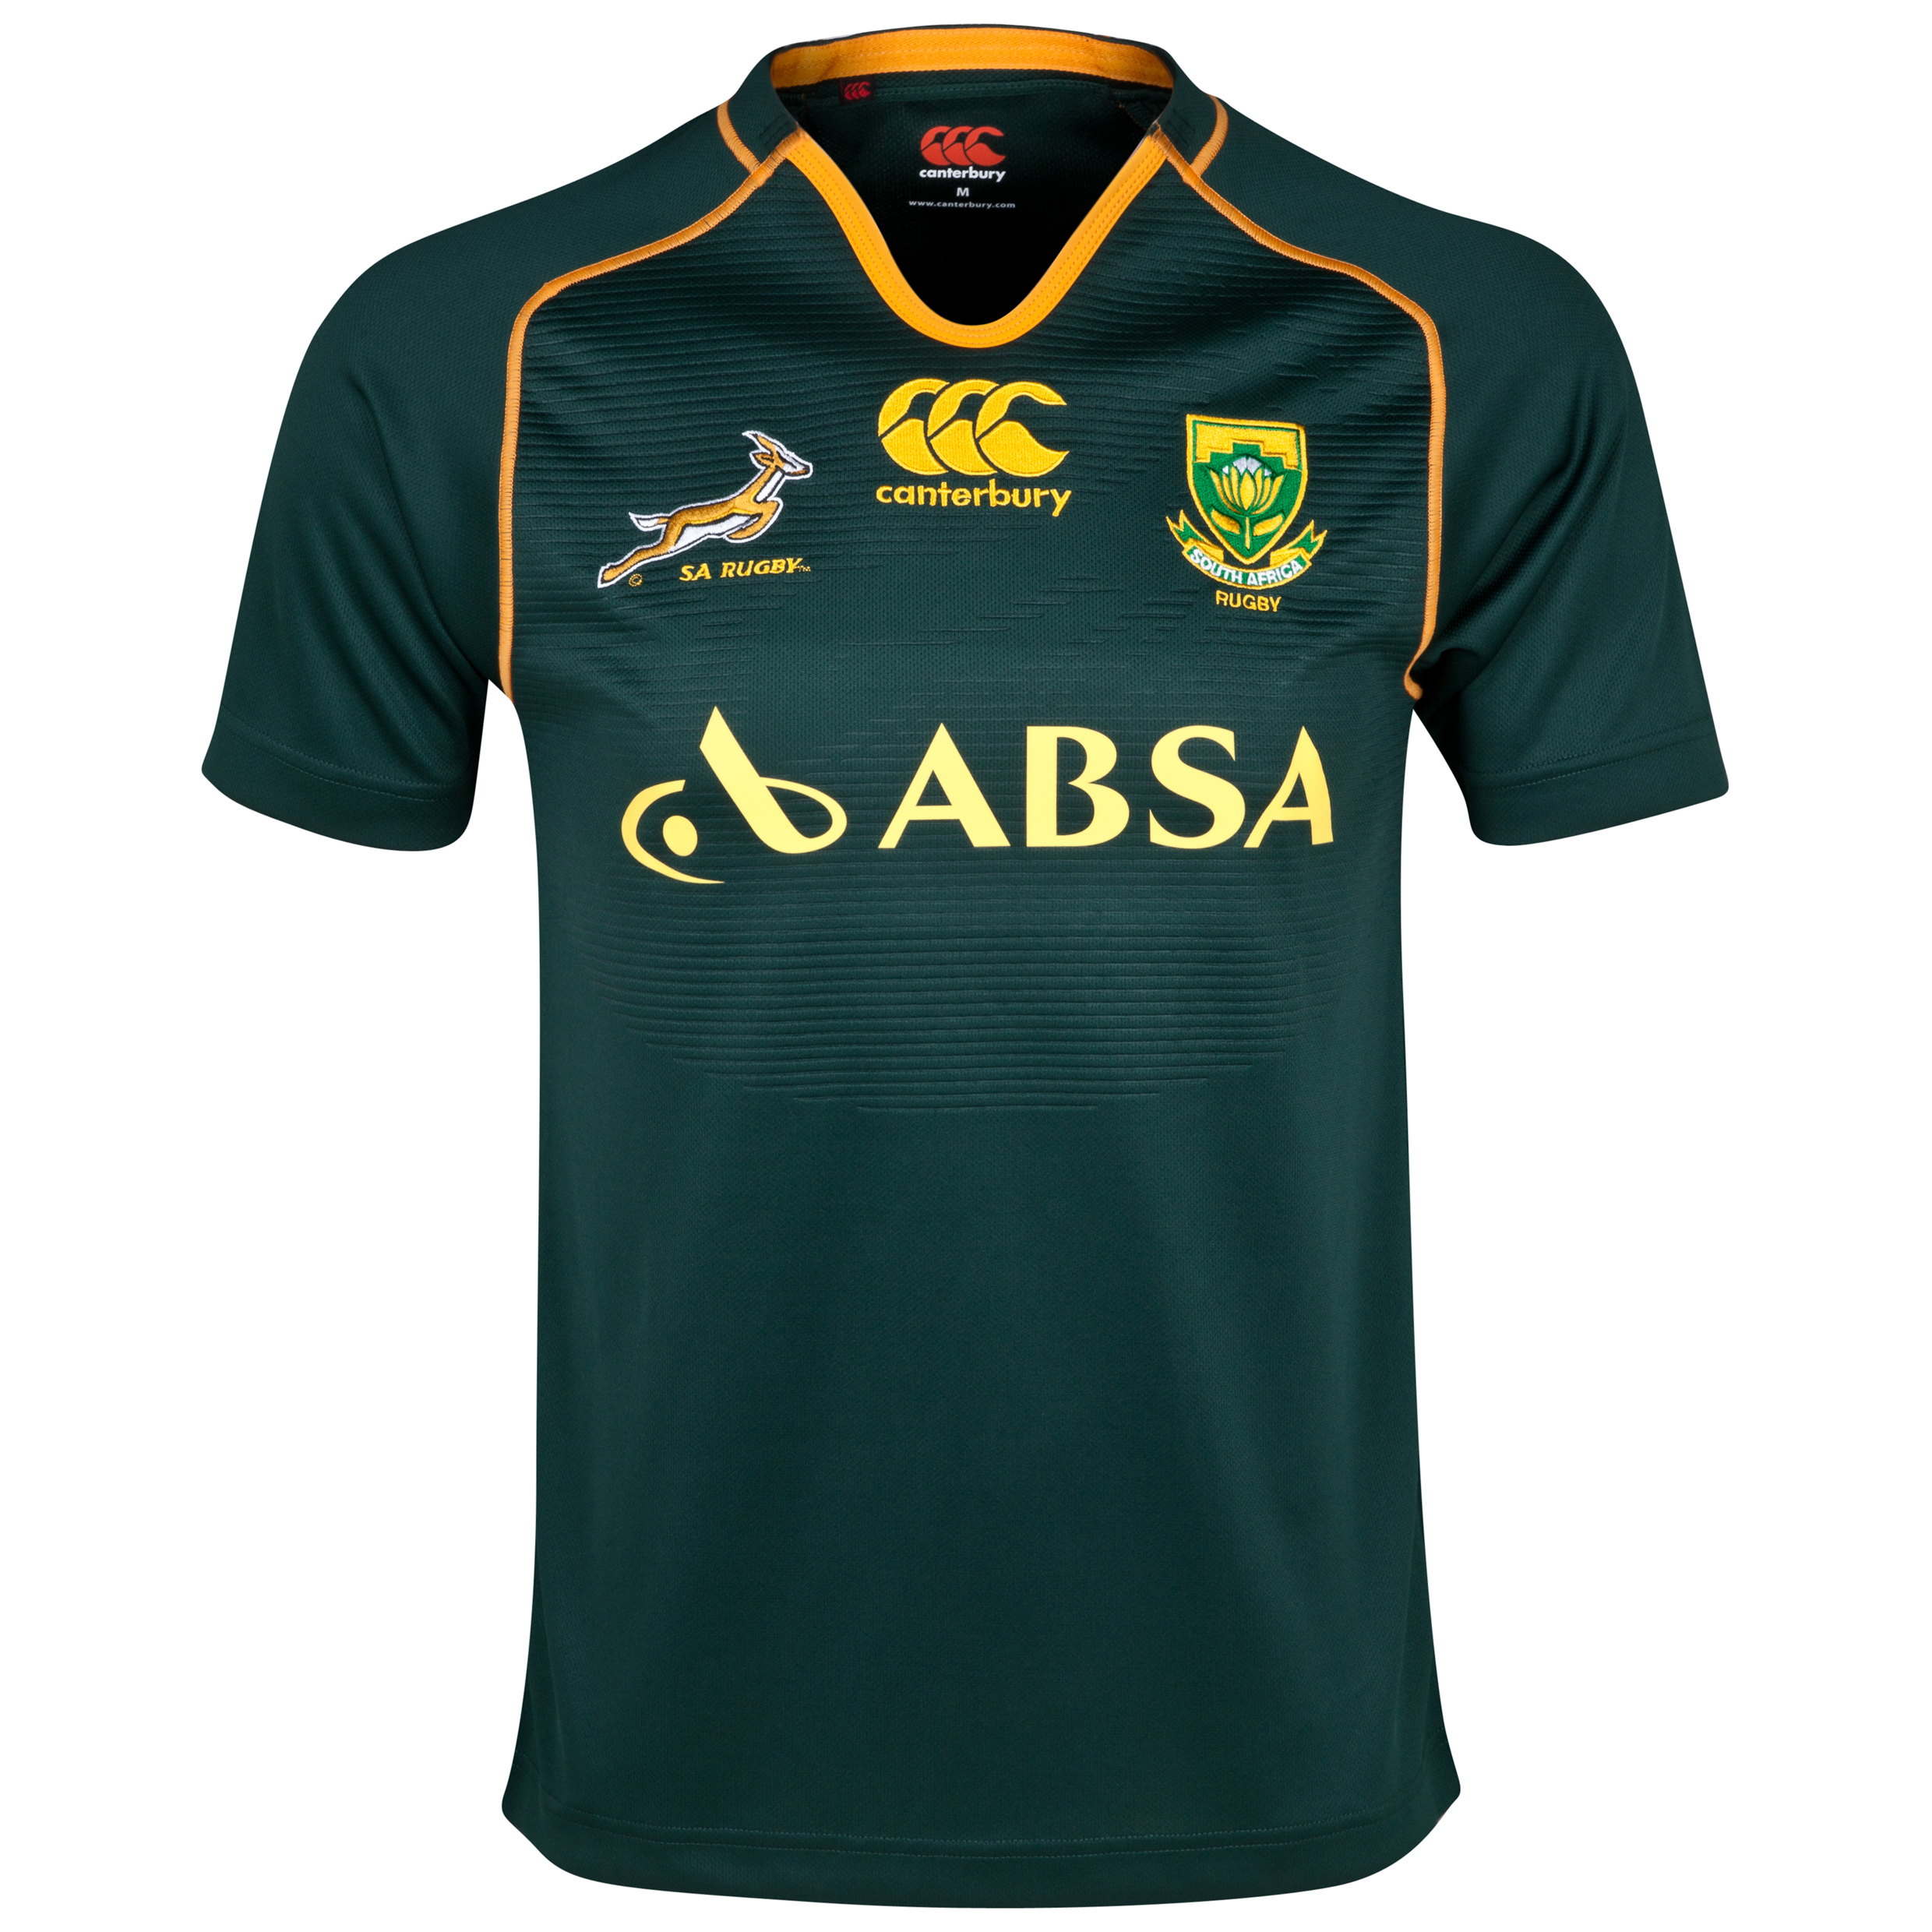 South Africa Springboks Home Rugby Pro Shirt 2013/14